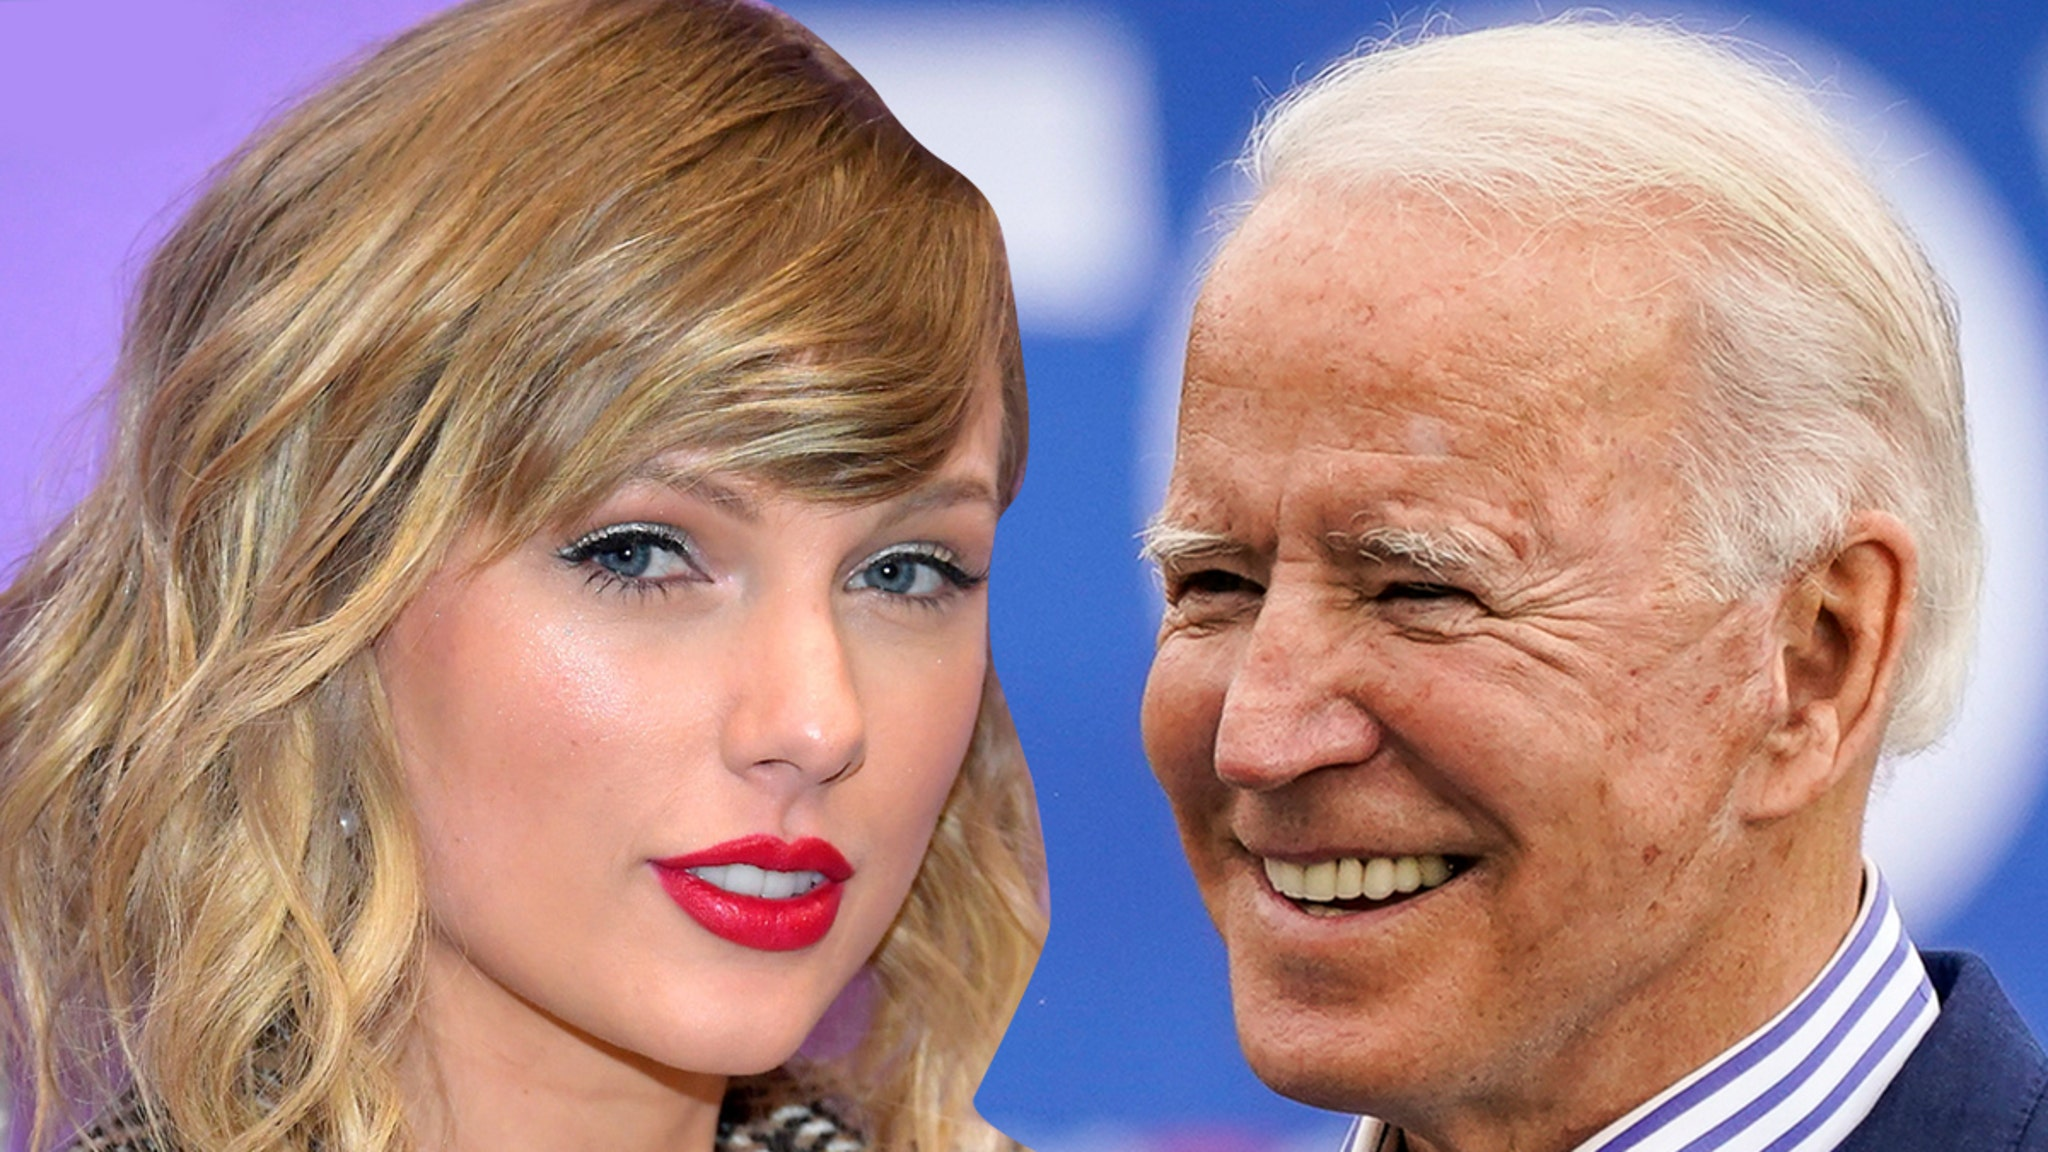 Taylor Swift 'Only the Young' Protest Song Used in Pro-Biden Vid